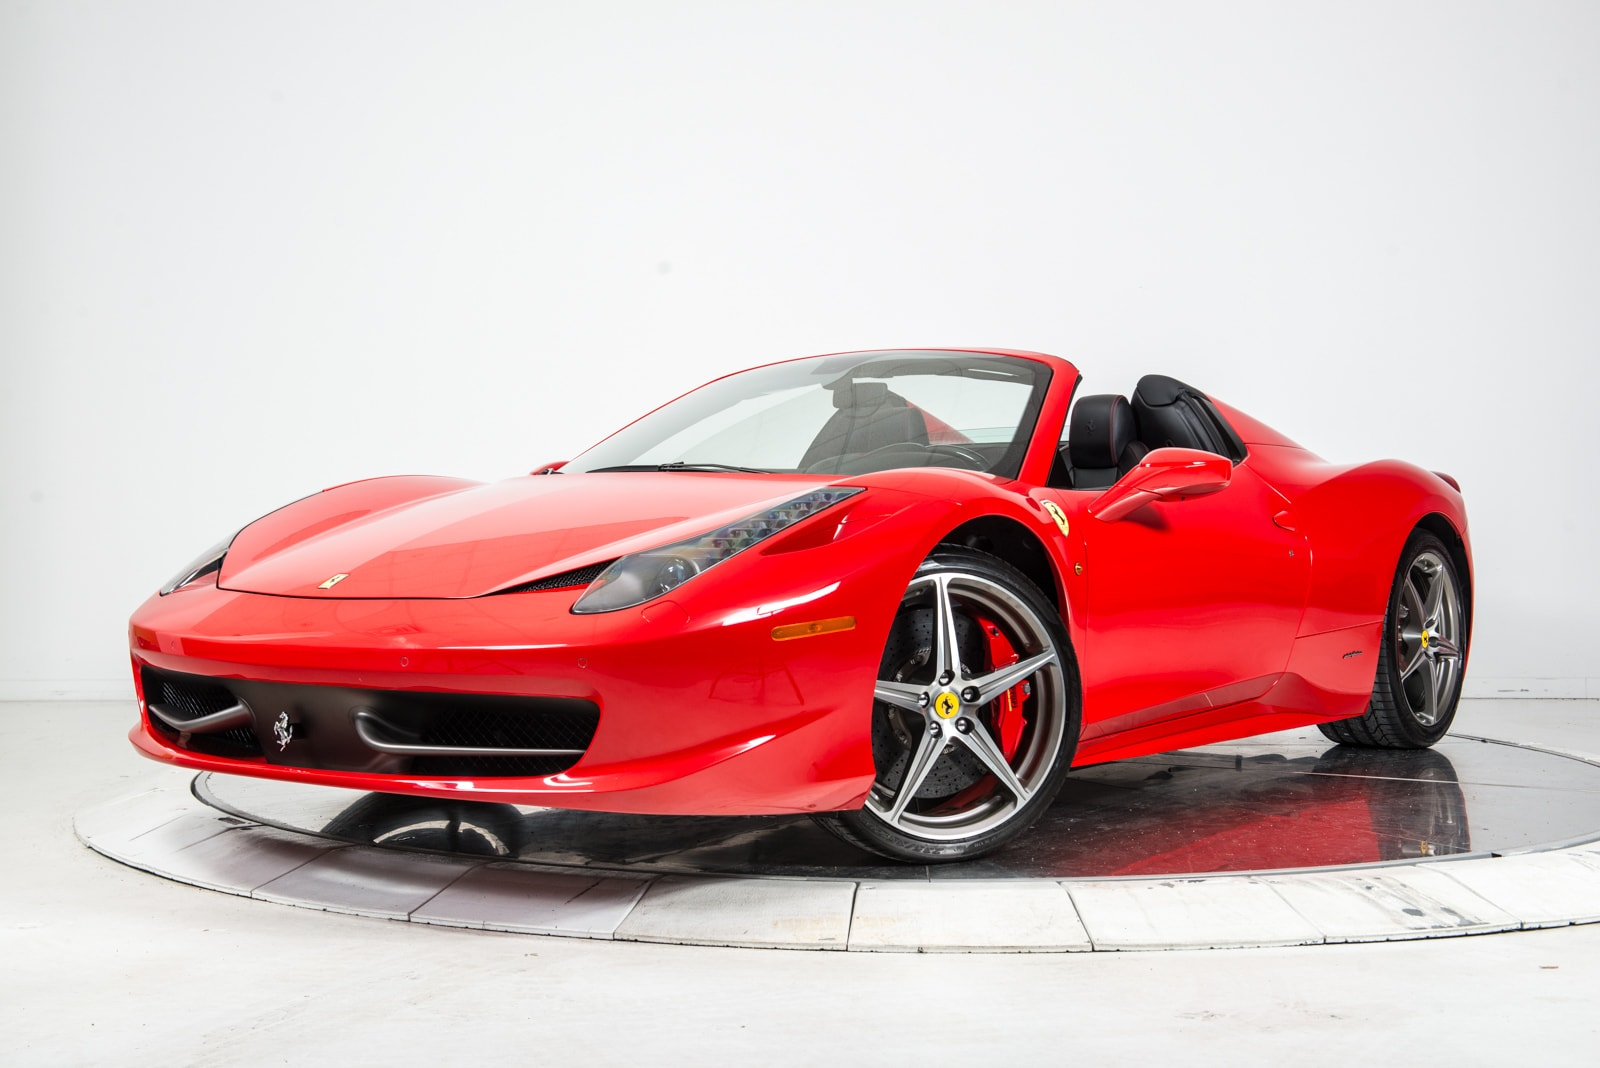 used 2014 ferrari 458 spider for sale plainview near long island ny vin zff68nha6e0196659. Black Bedroom Furniture Sets. Home Design Ideas